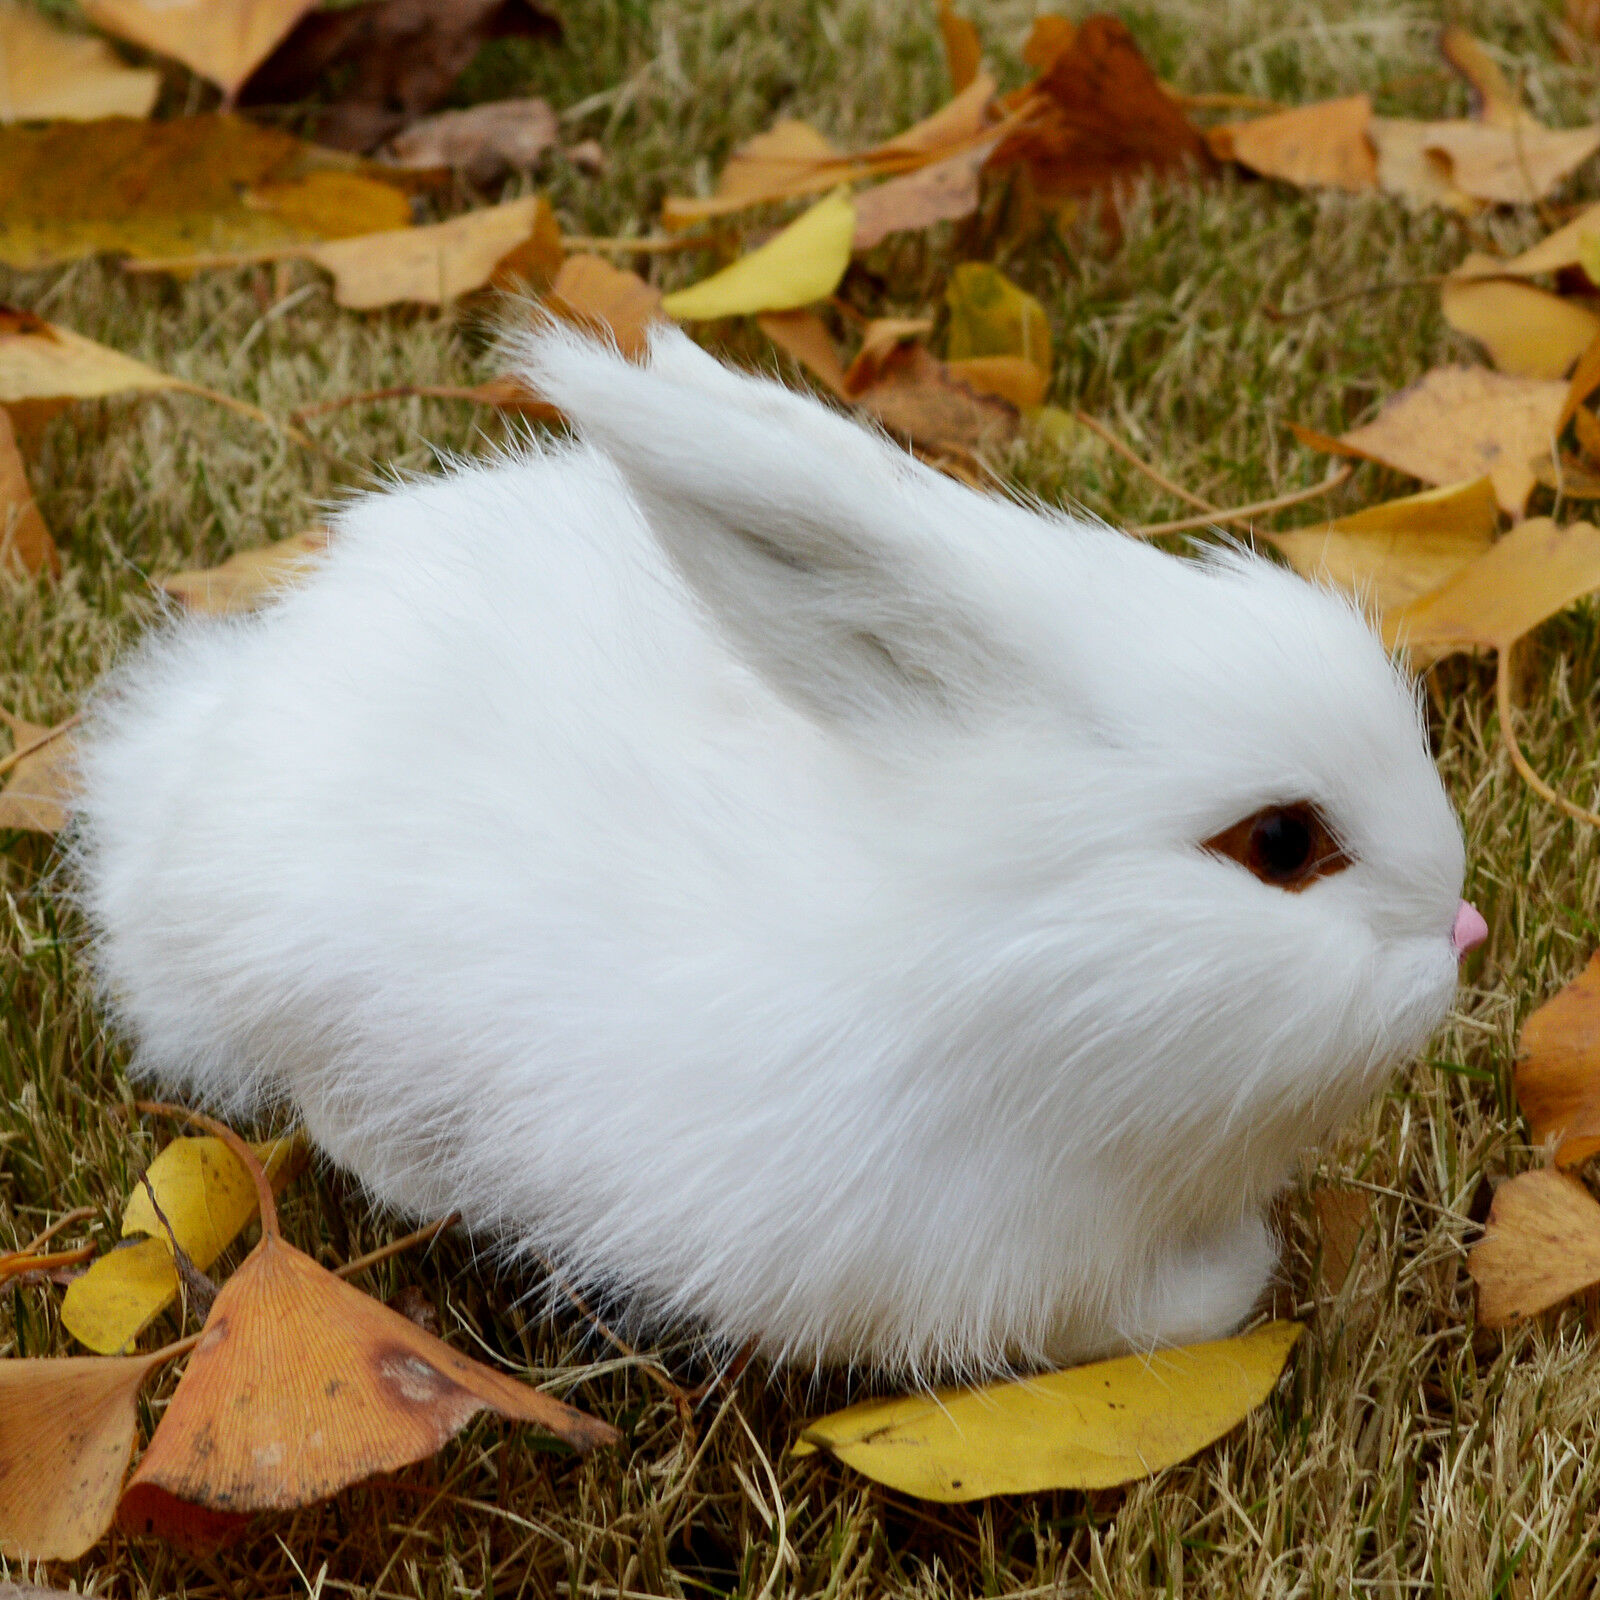 Mini Realistic Cute White Plush Rabbits Fur Lifelike Animal